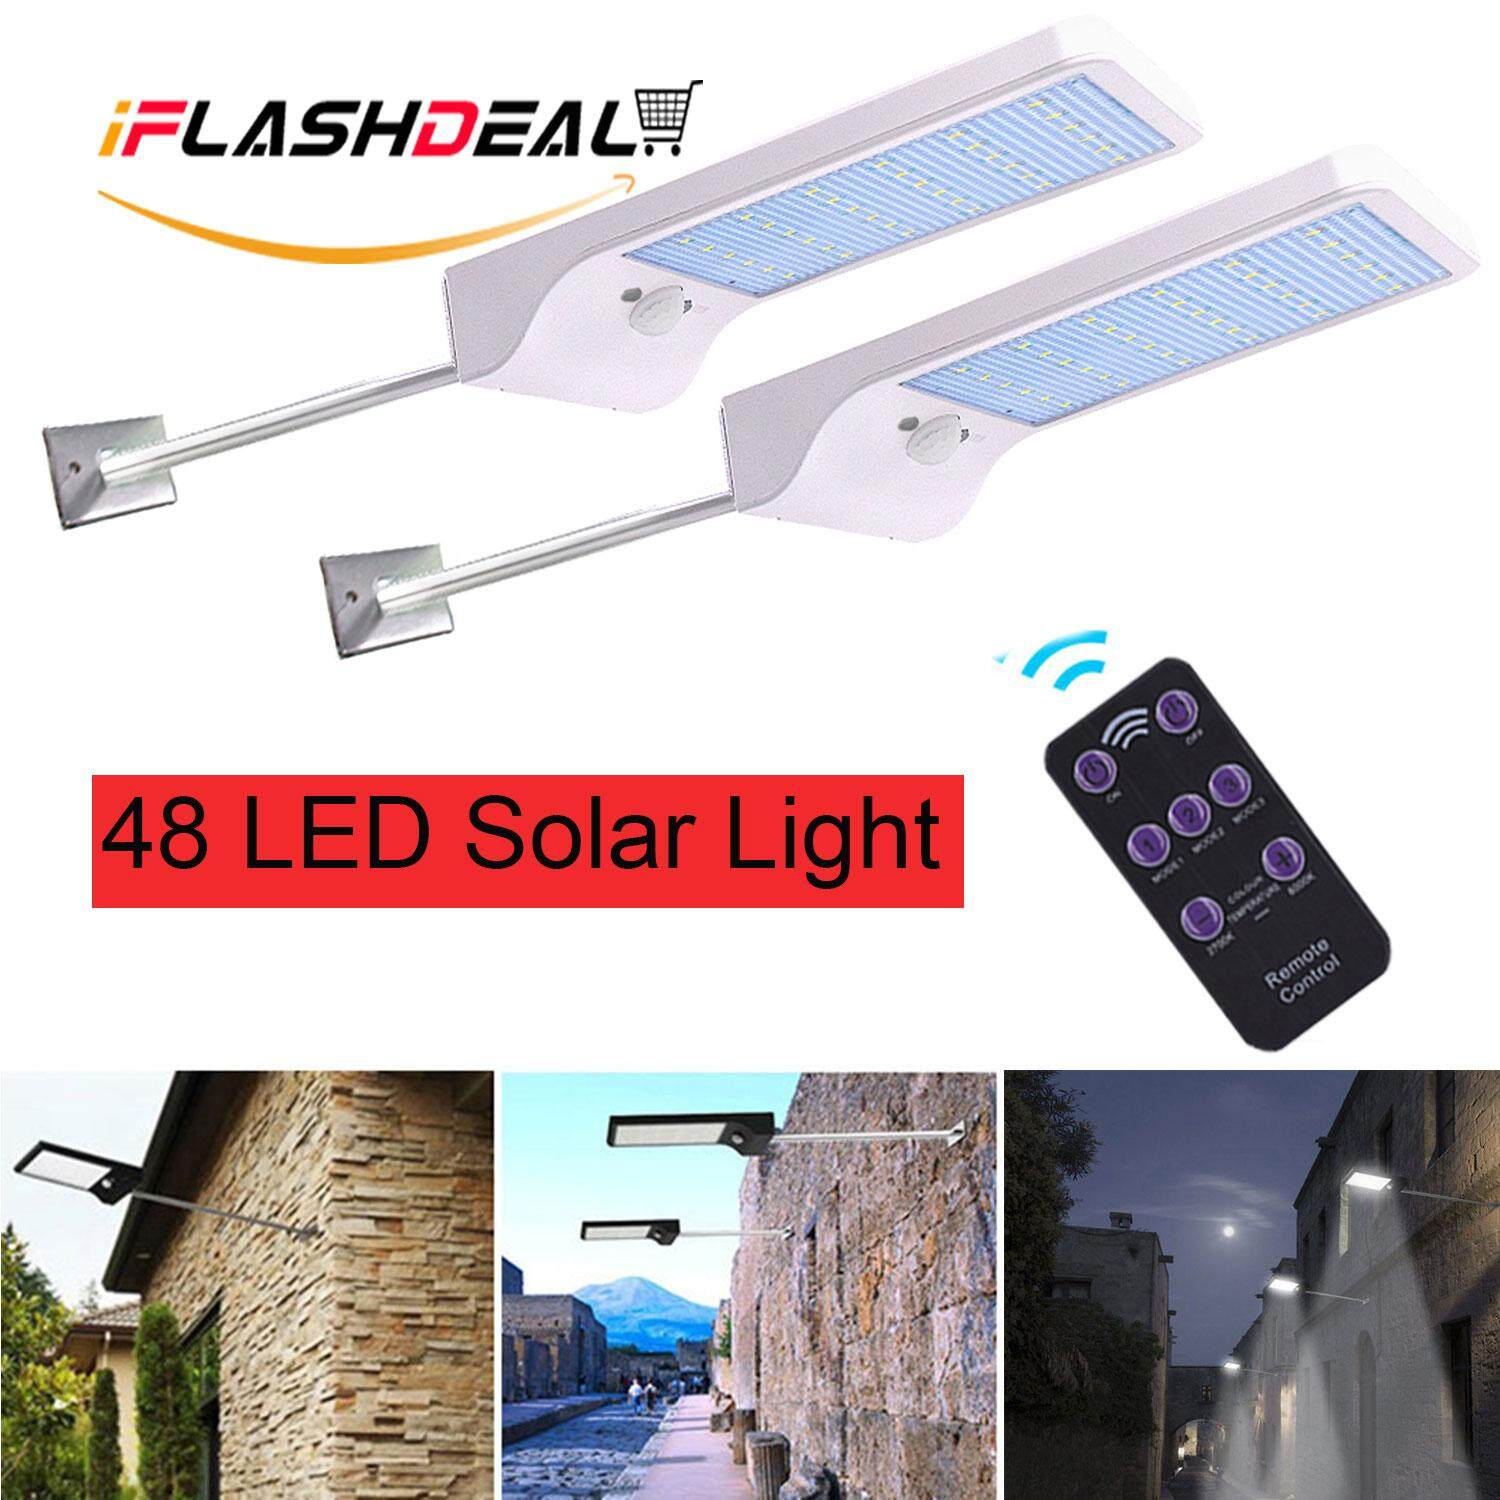 iFlashDeal Upgraded 48 LED Solar Light Outdoor Lighting Waterproof Motion Sensor Light Mounting Pole Garden Light with Remote Control 【2 Pack】